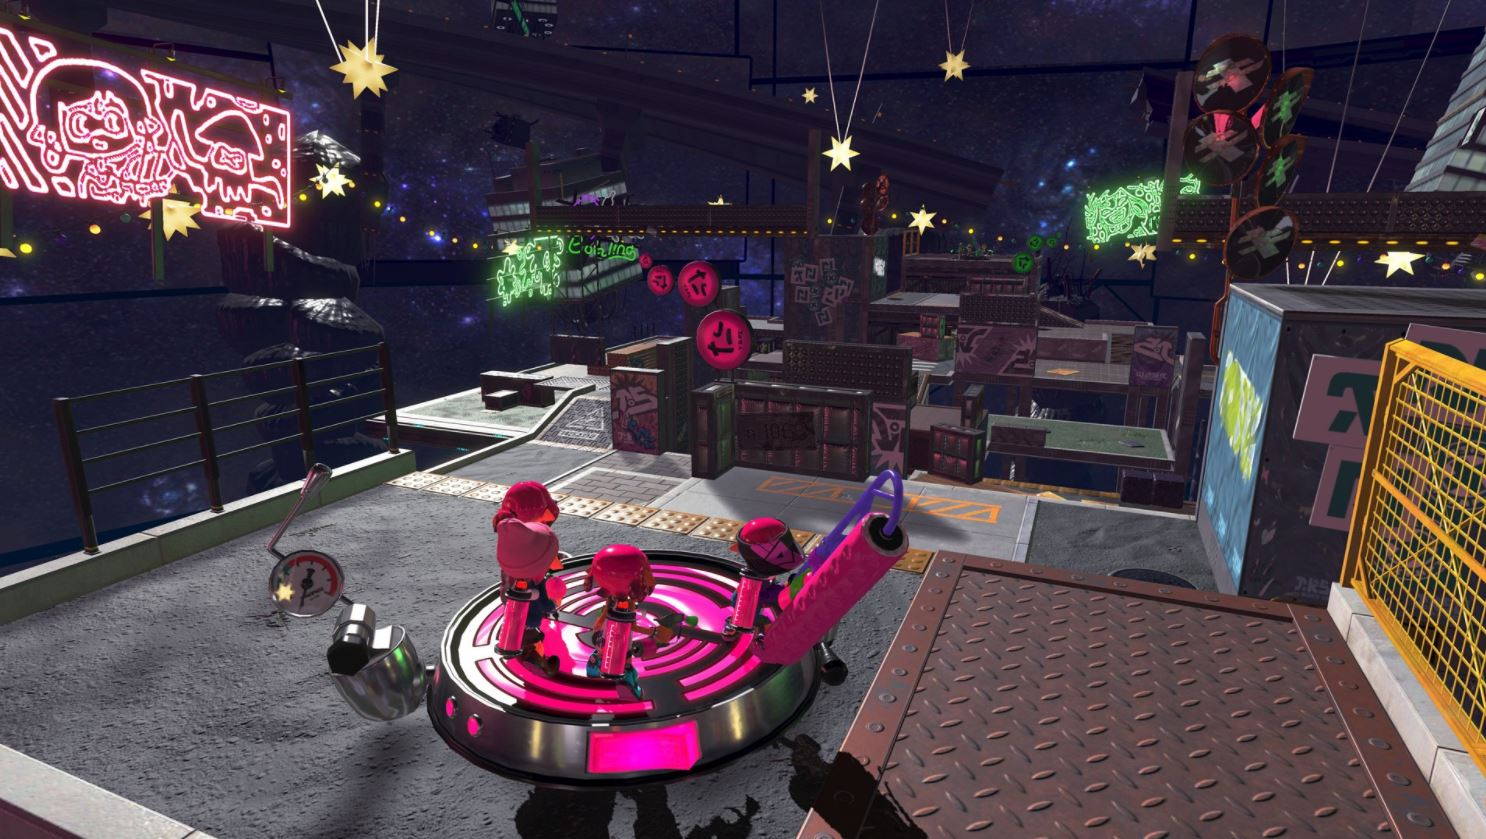 the upcoming splatoon 2 splatfest will introduce a new stage